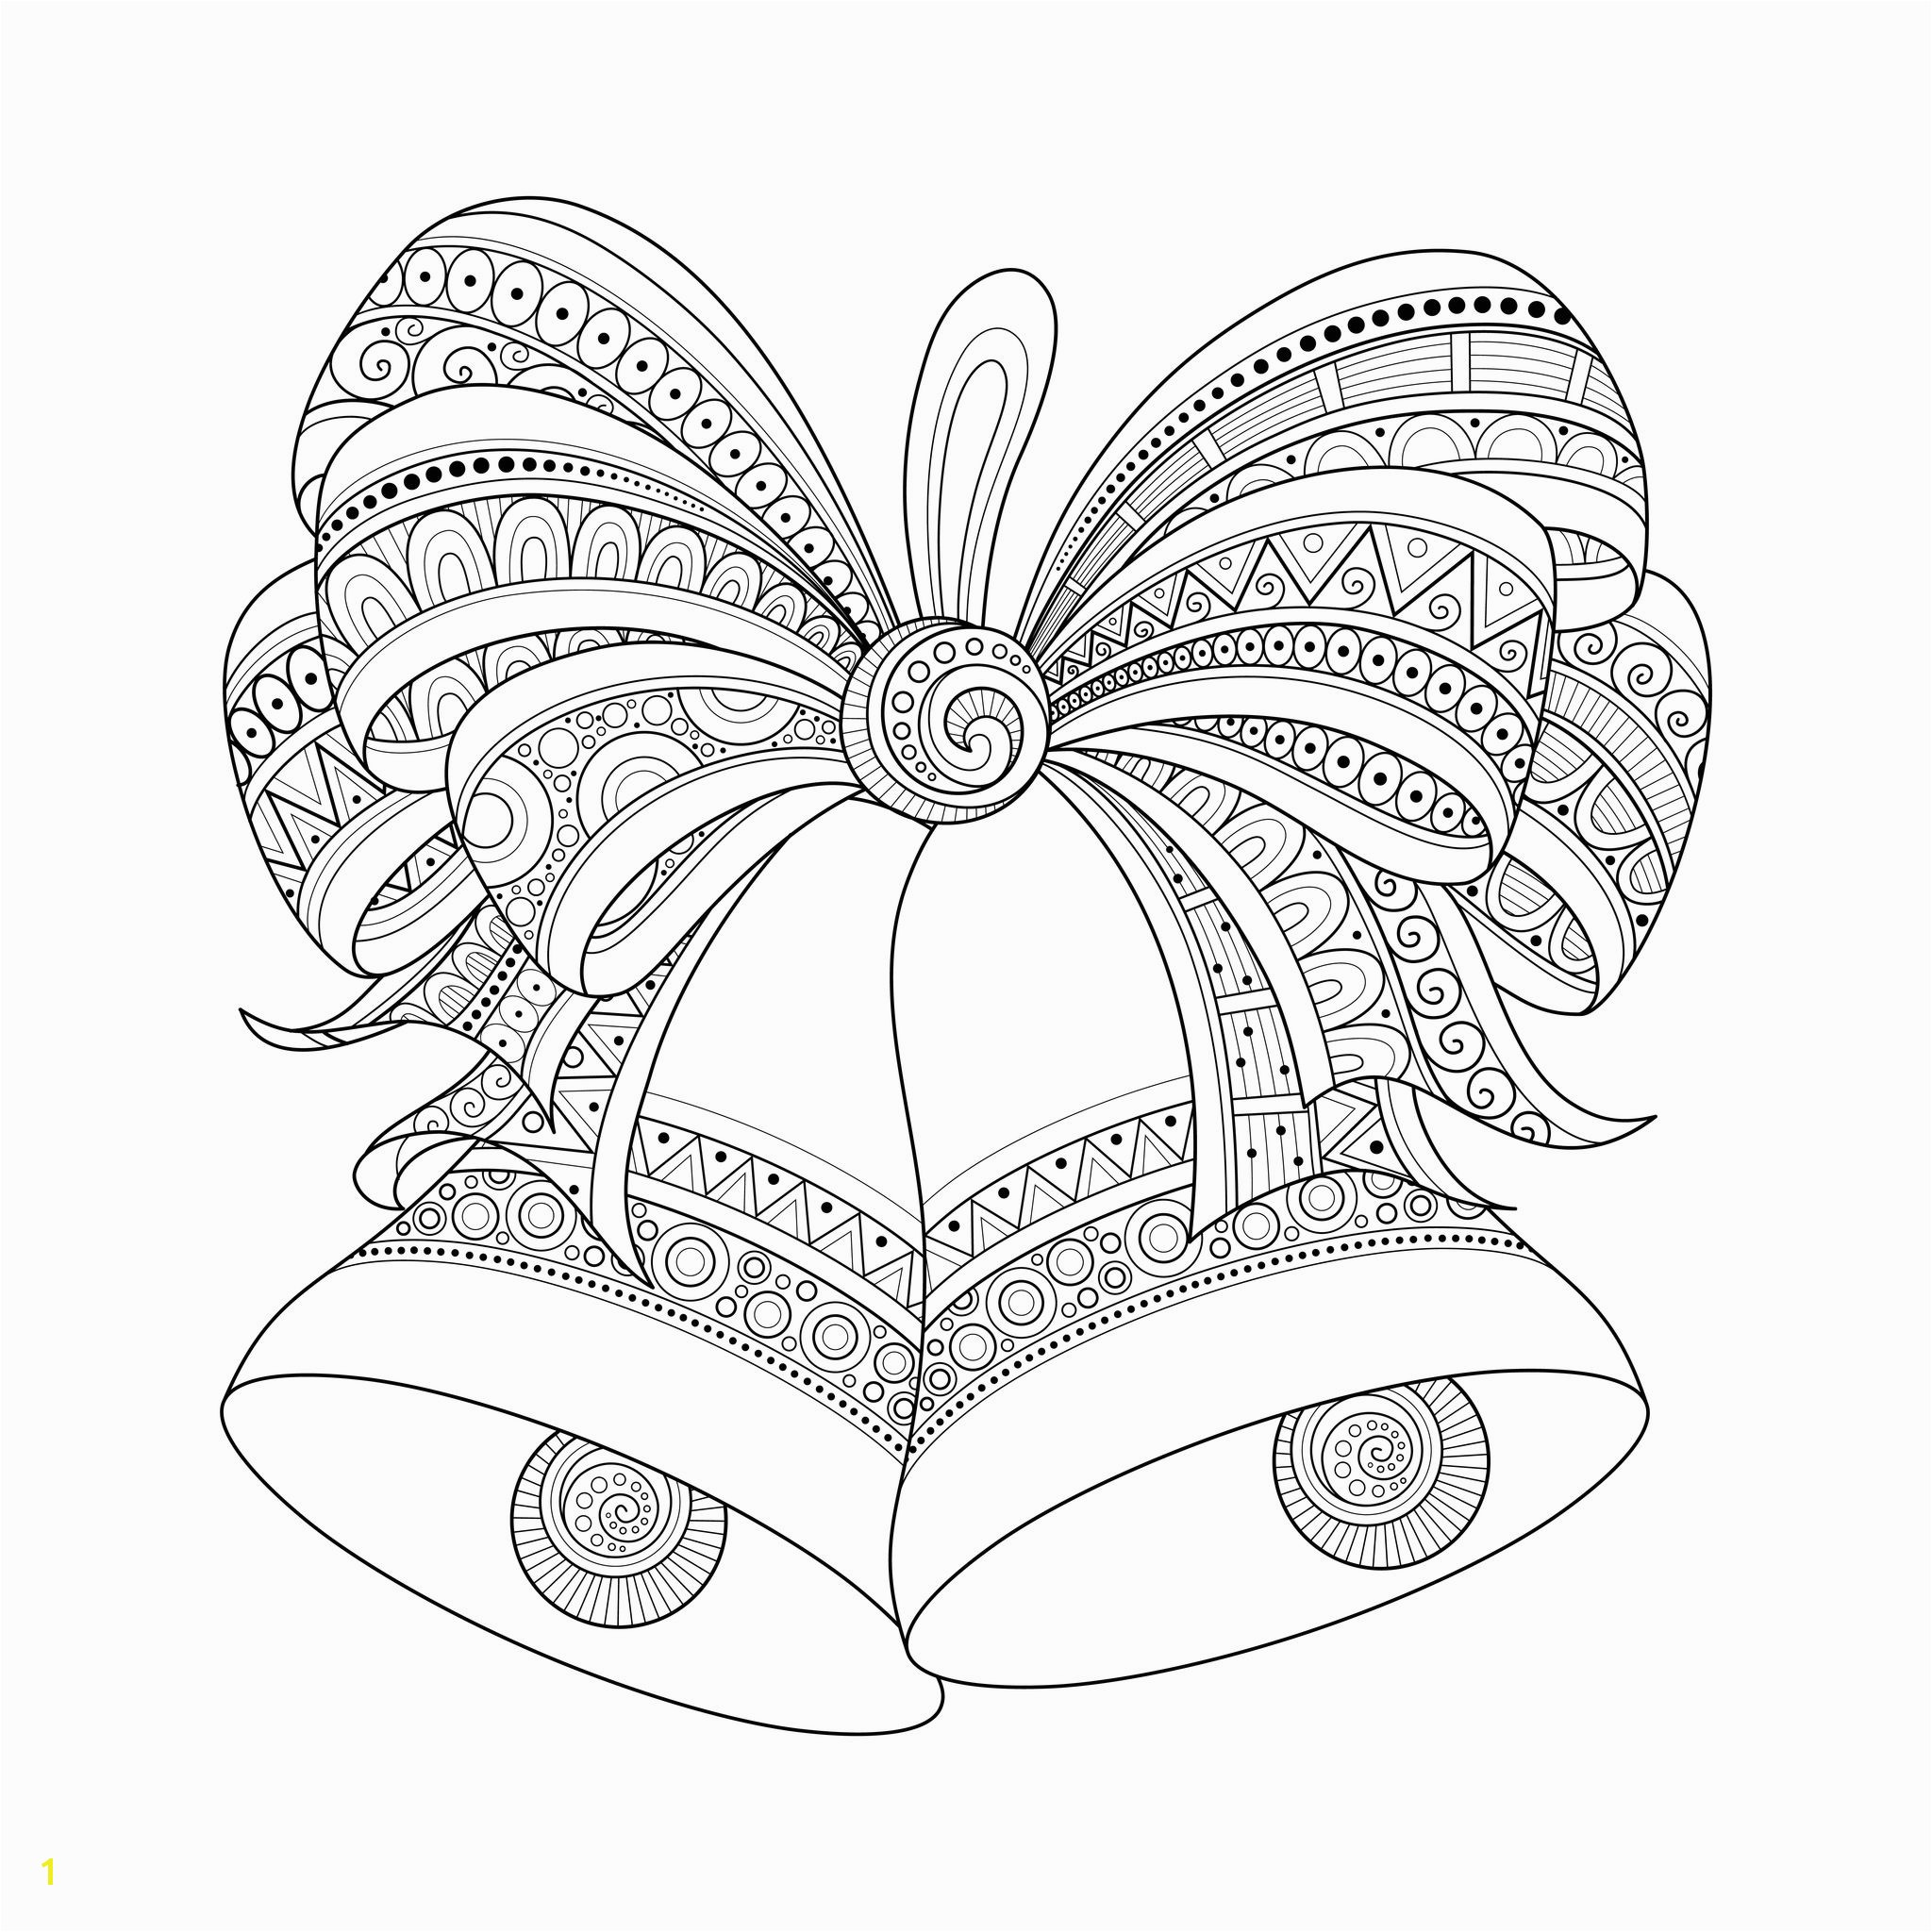 Christmas Printable Coloring Pages for Adults Christmas Coloring Pages for Adults